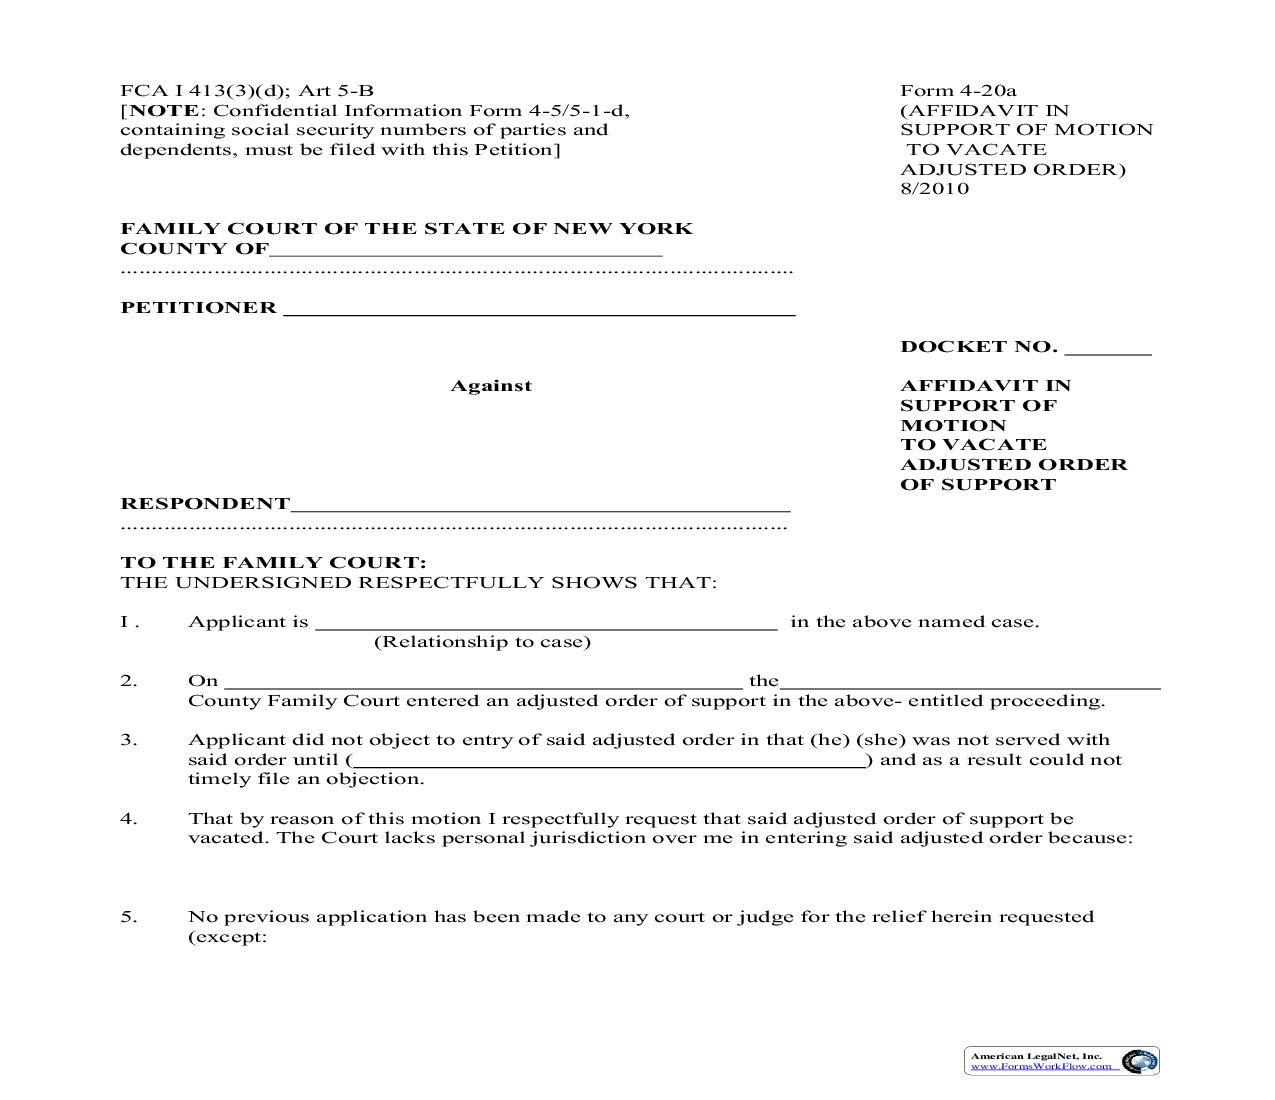 Affidavit In Support Of Motion To Vacate Adjusted Order Of Support {4-20a} | Pdf Fpdf Doc Docx | New York